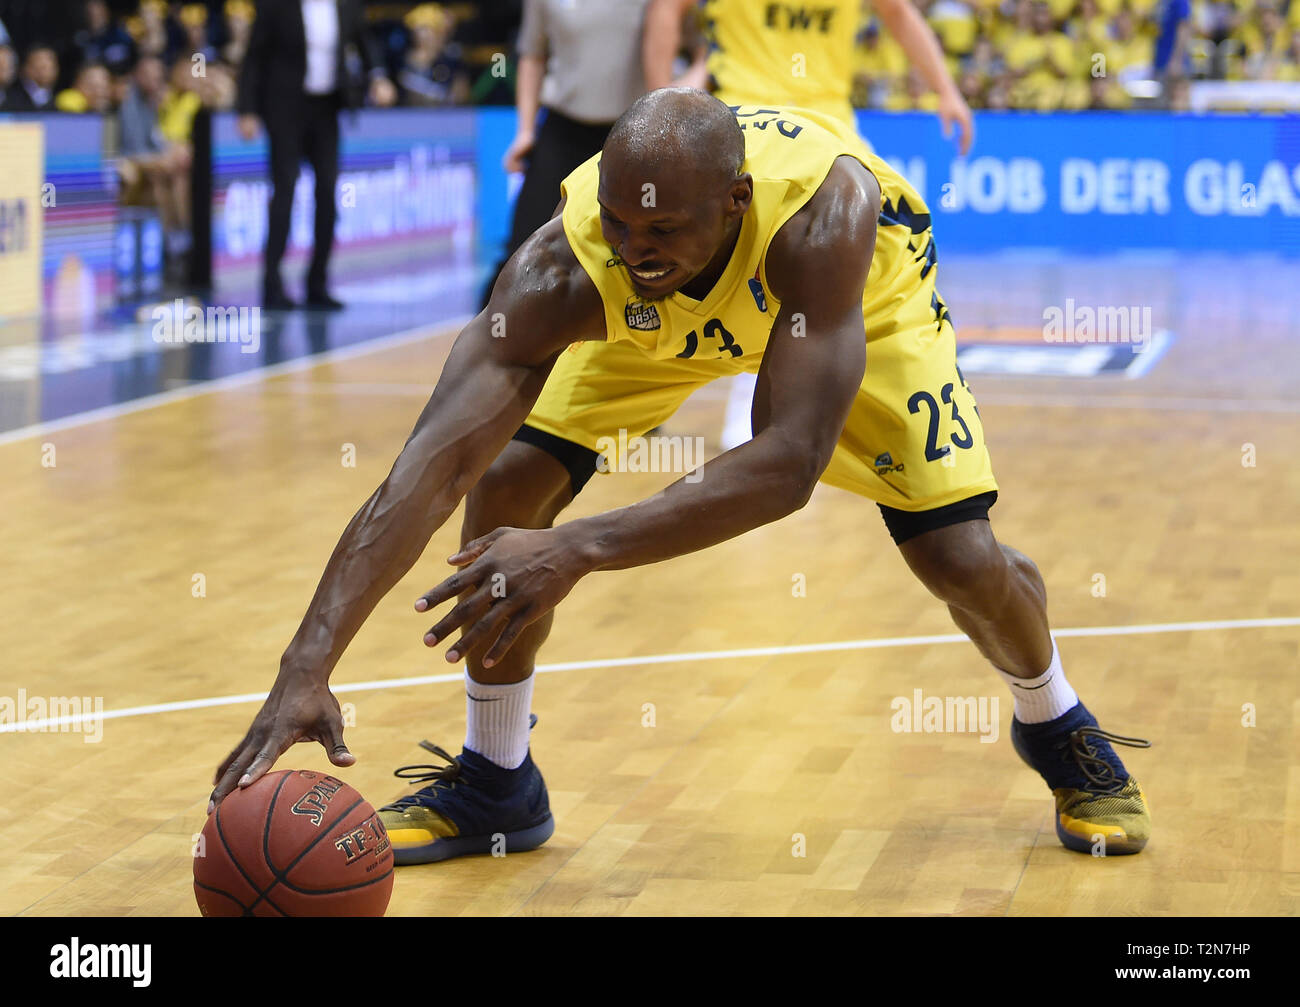 Oldenburg, Germany. 03rd Apr, 2019. Basketball: Bundesliga, EWE Baskets Oldenburg - Telekom Baskets Bonn, main round, 25th matchday. Oldenburg's Rickey Paulding is getting the ball. Credit: Carmen Jaspersen/dpa/Alamy Live News - Stock Image